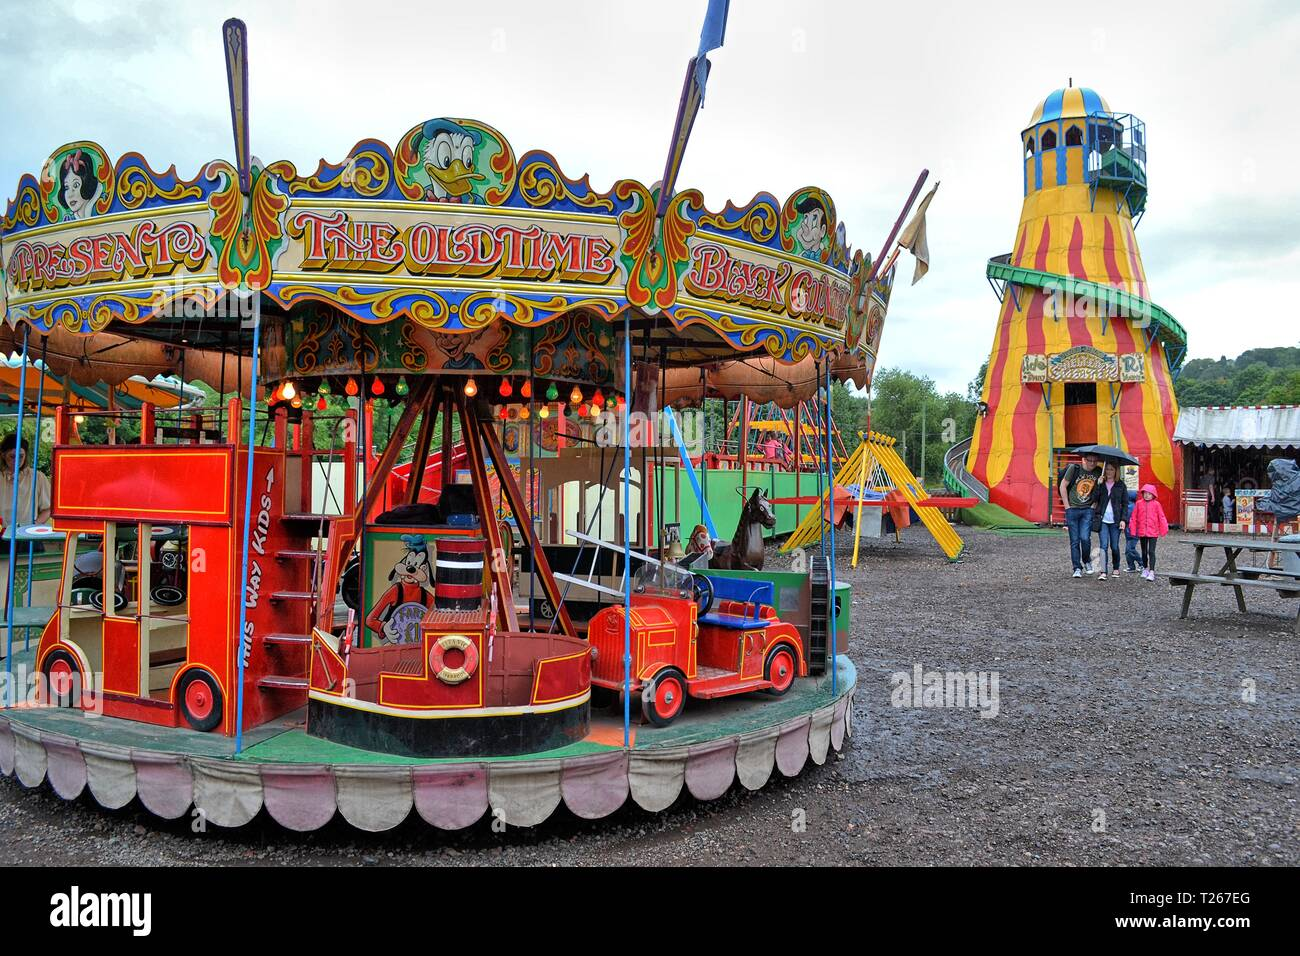 Fairground at The Black Country Living Museum, an open-air museum of rebuilt historic buildings in Dudley, West Midlands, England, UK - Stock Image